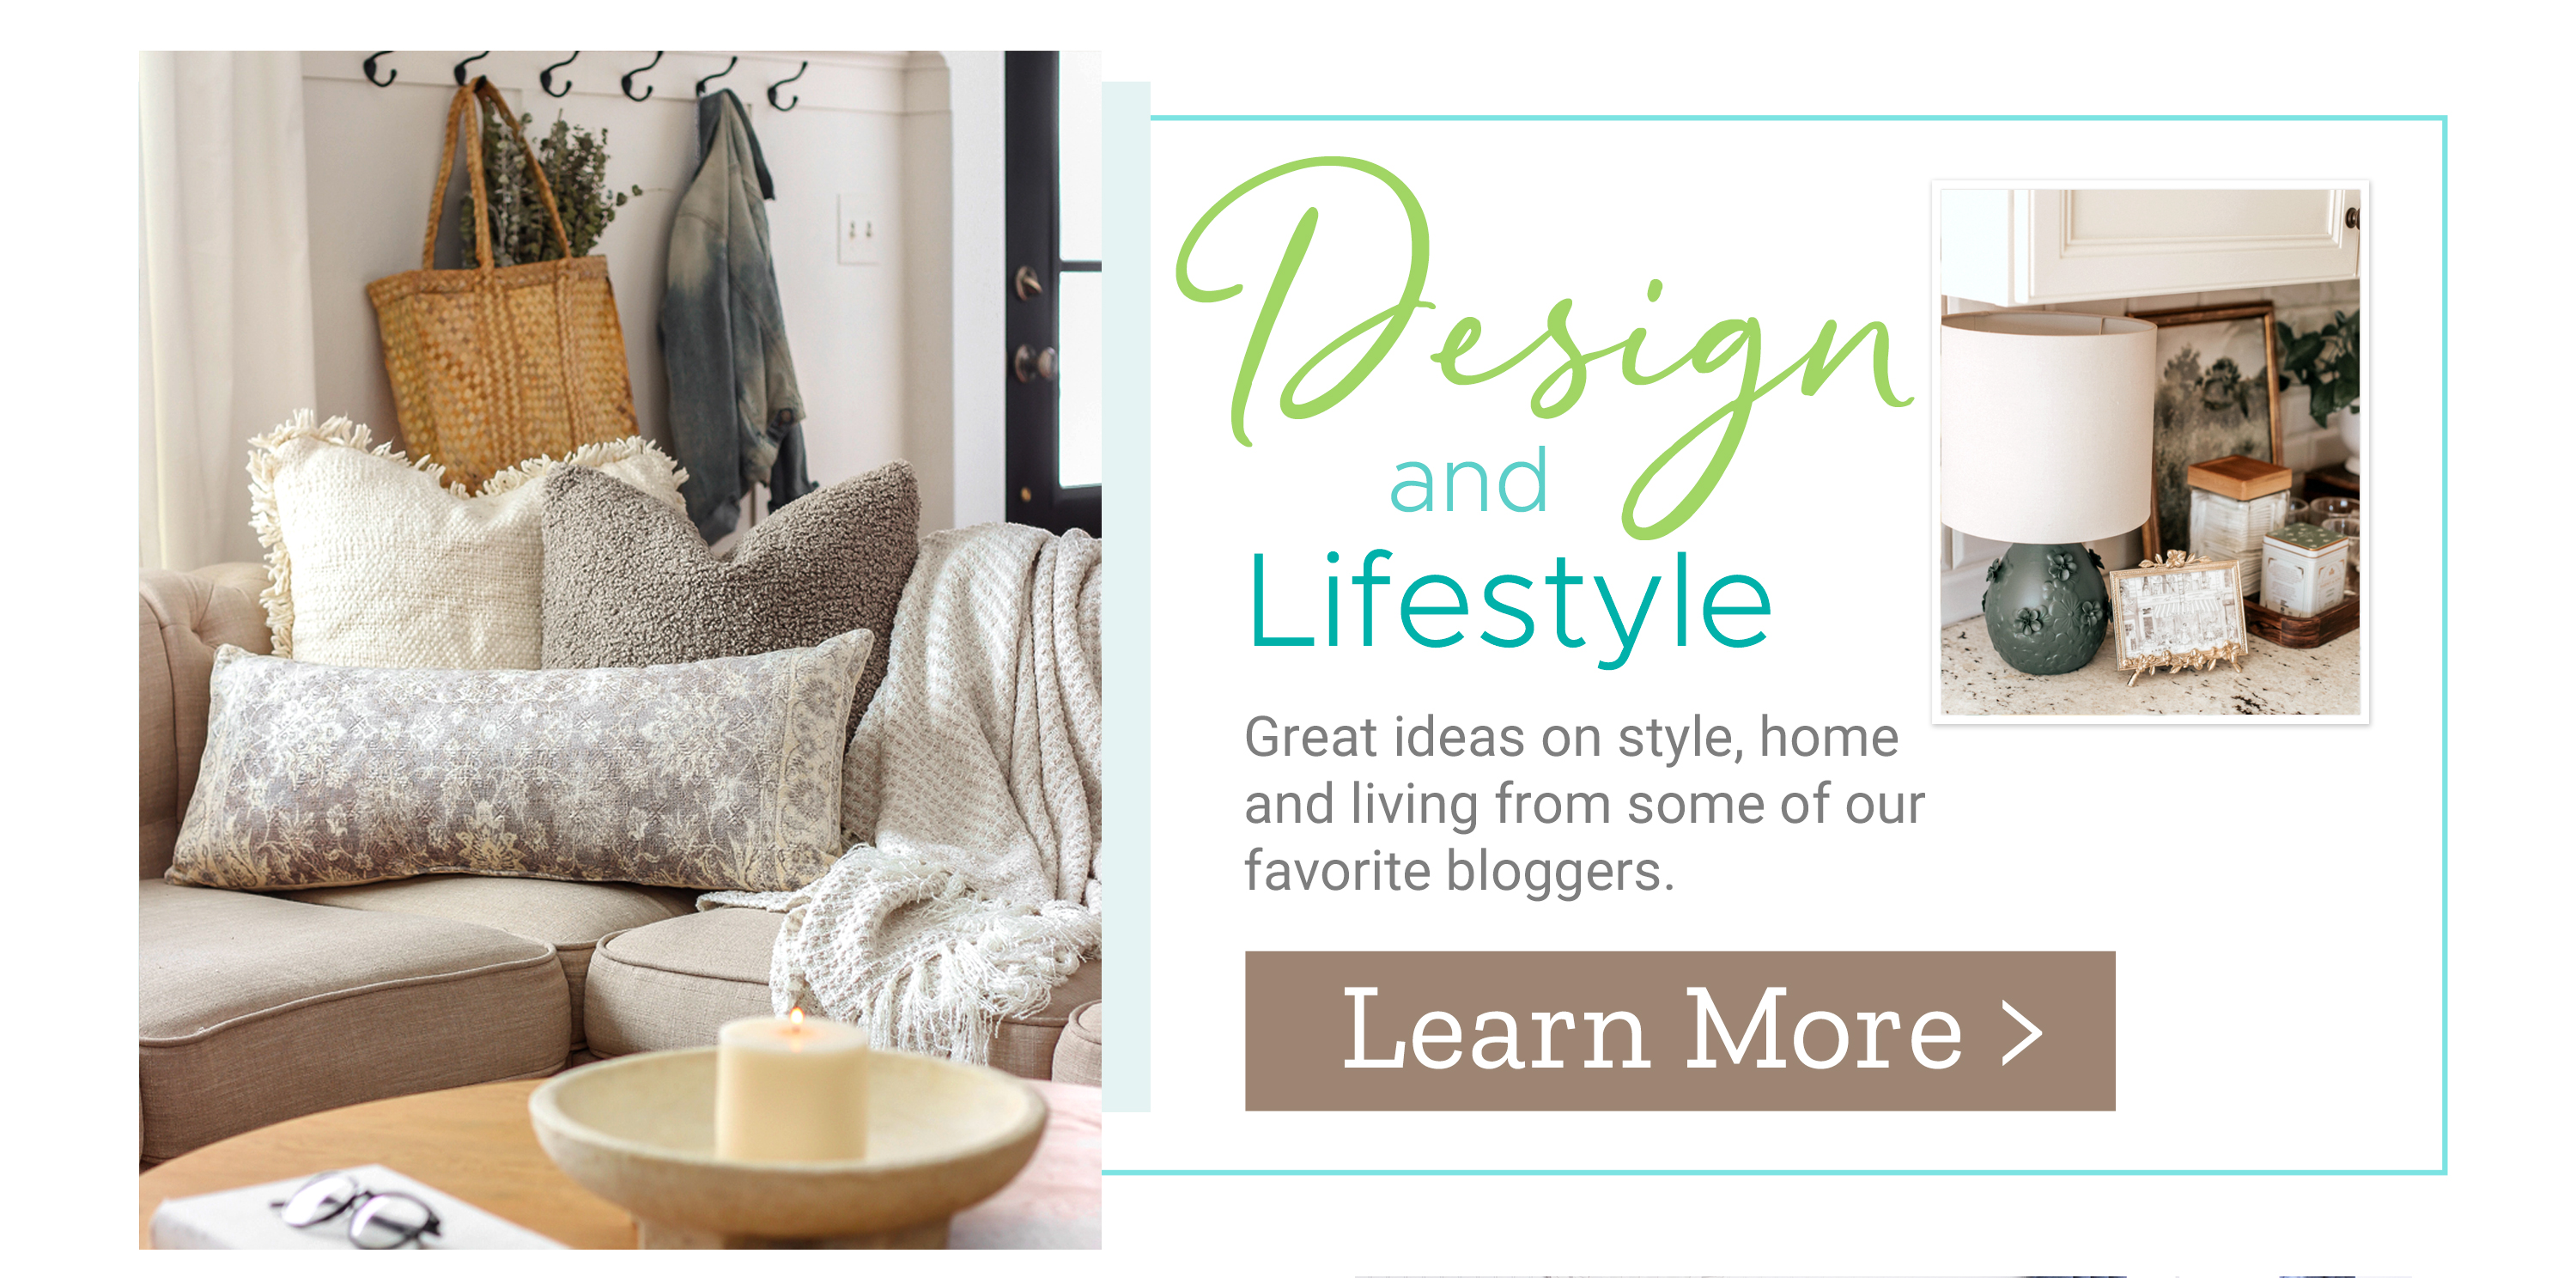 Design and Lifestyle - Great ideas on style, home and living from some of our favorite bloggers.